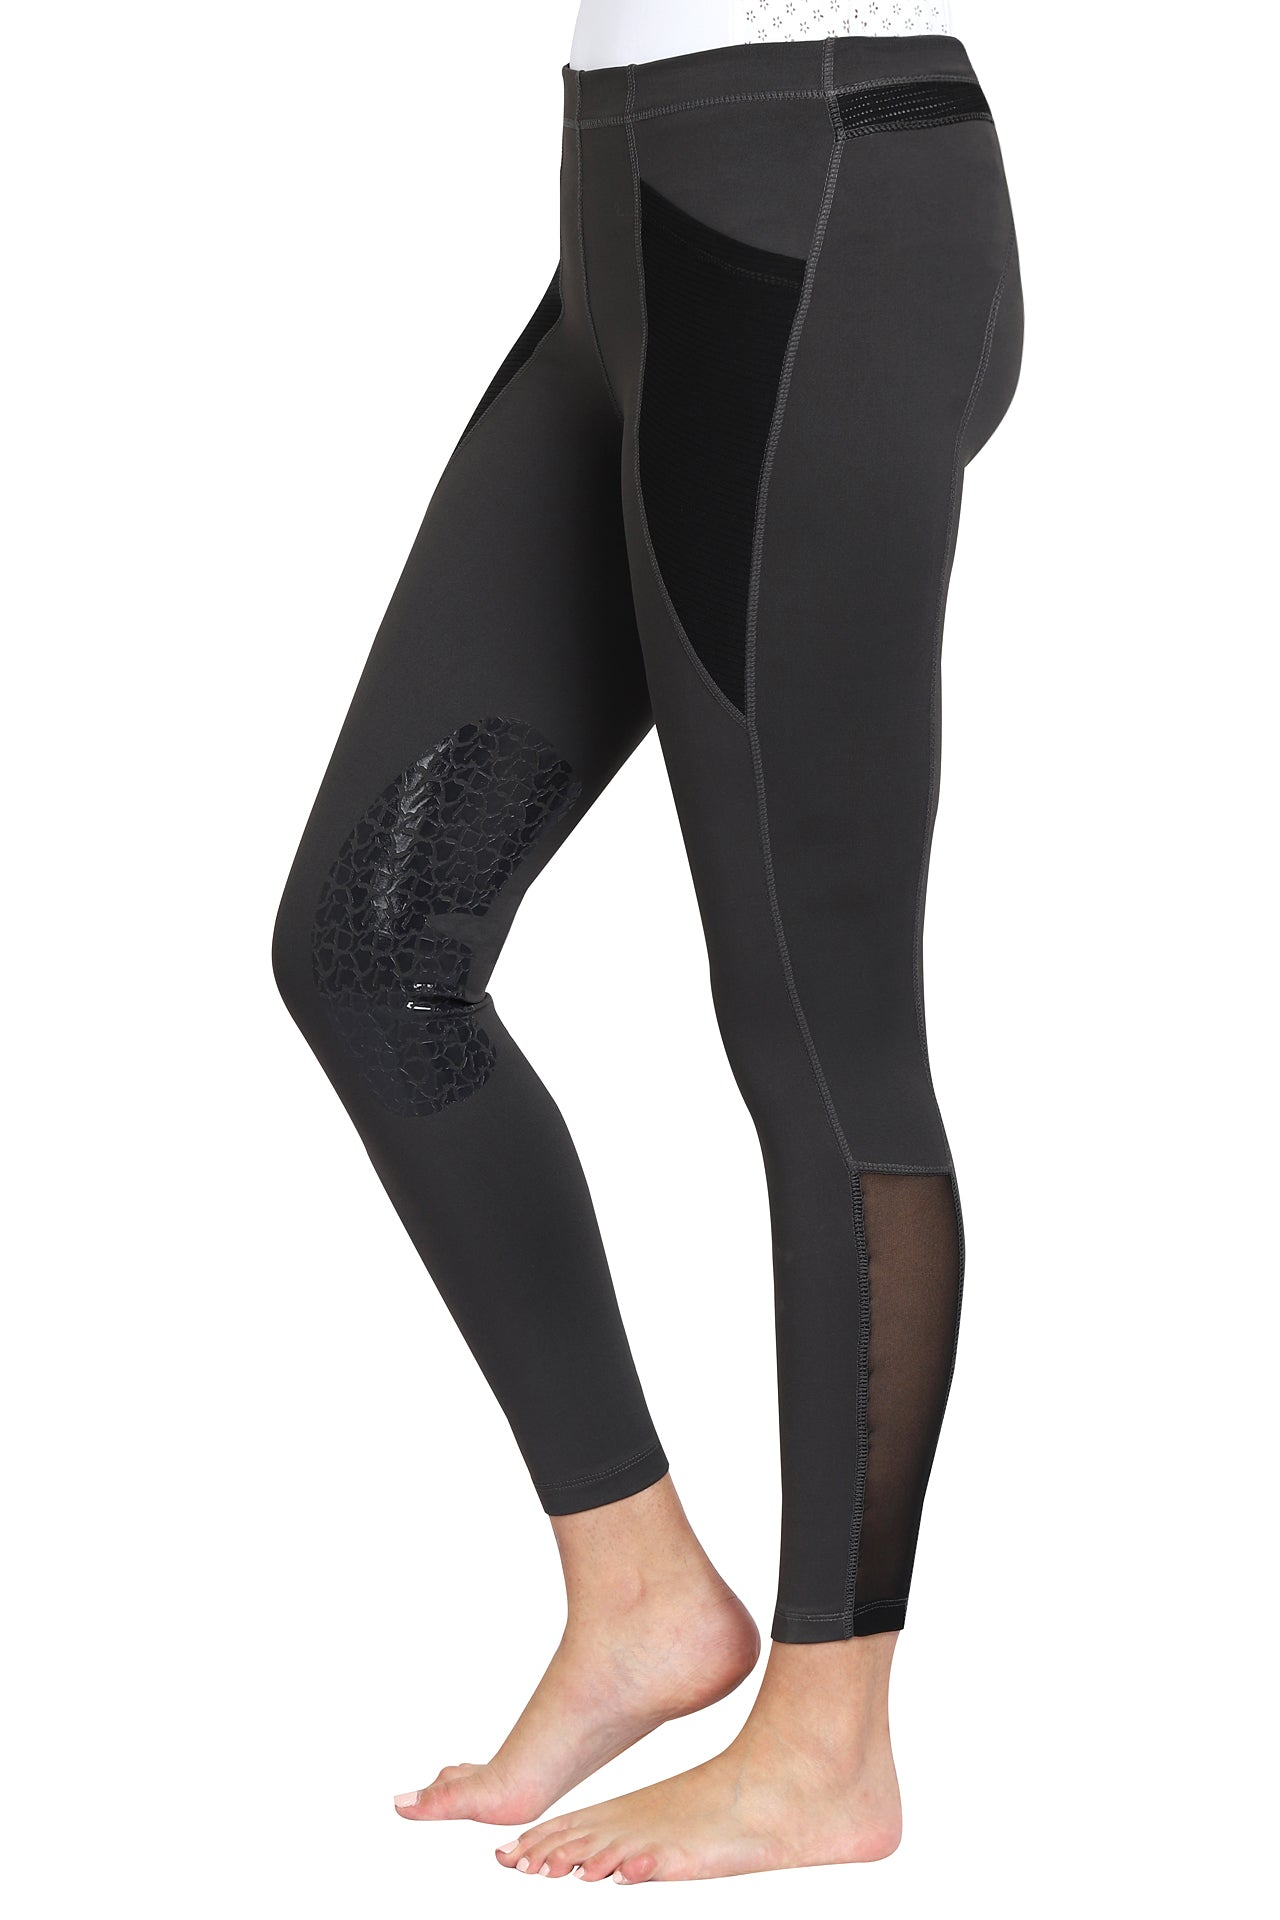 TUFFRIDER LADIES TATUM TIGHTS - TuffRider - Breeches.com